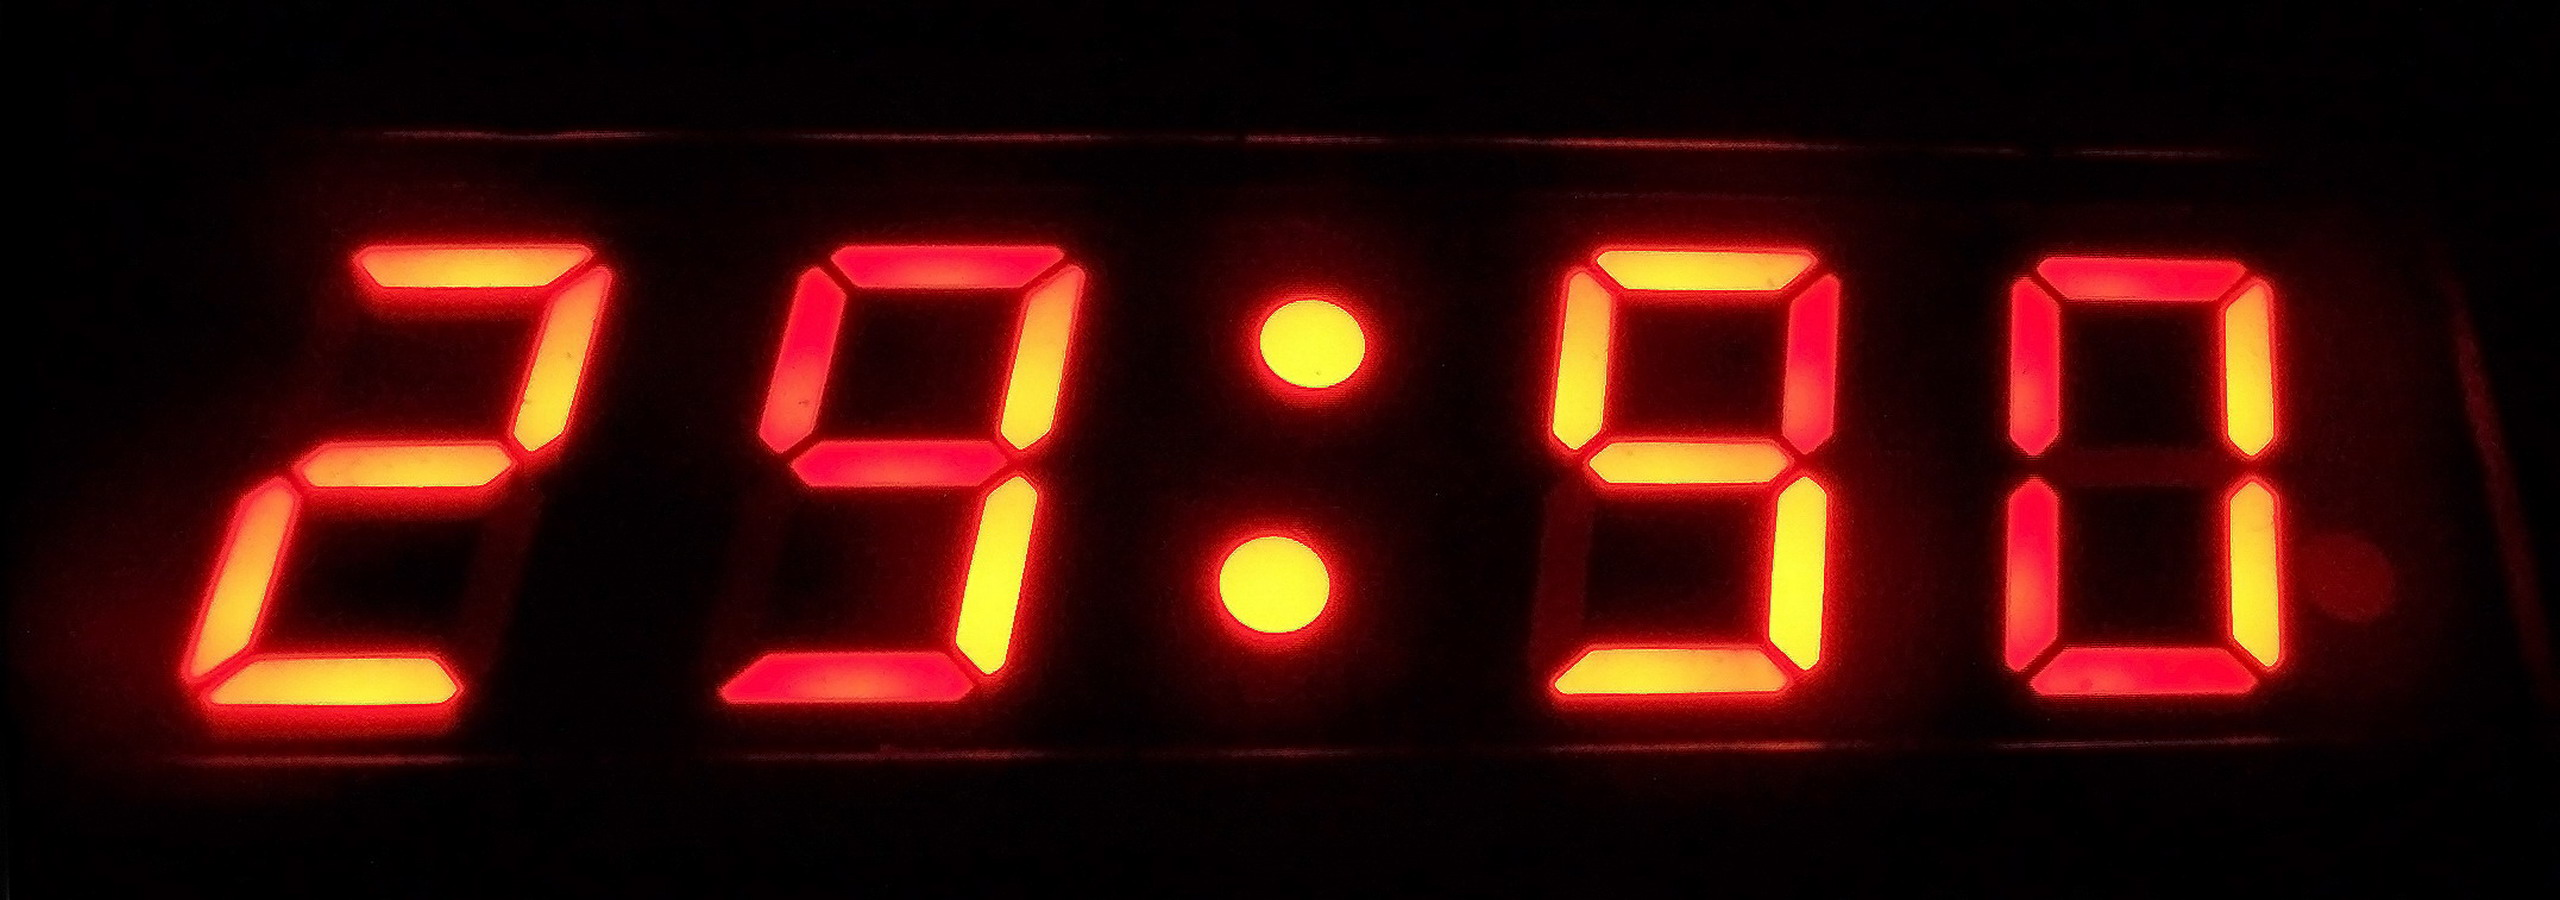 Digital_clock_changing_numbers.jpg (2560×900)